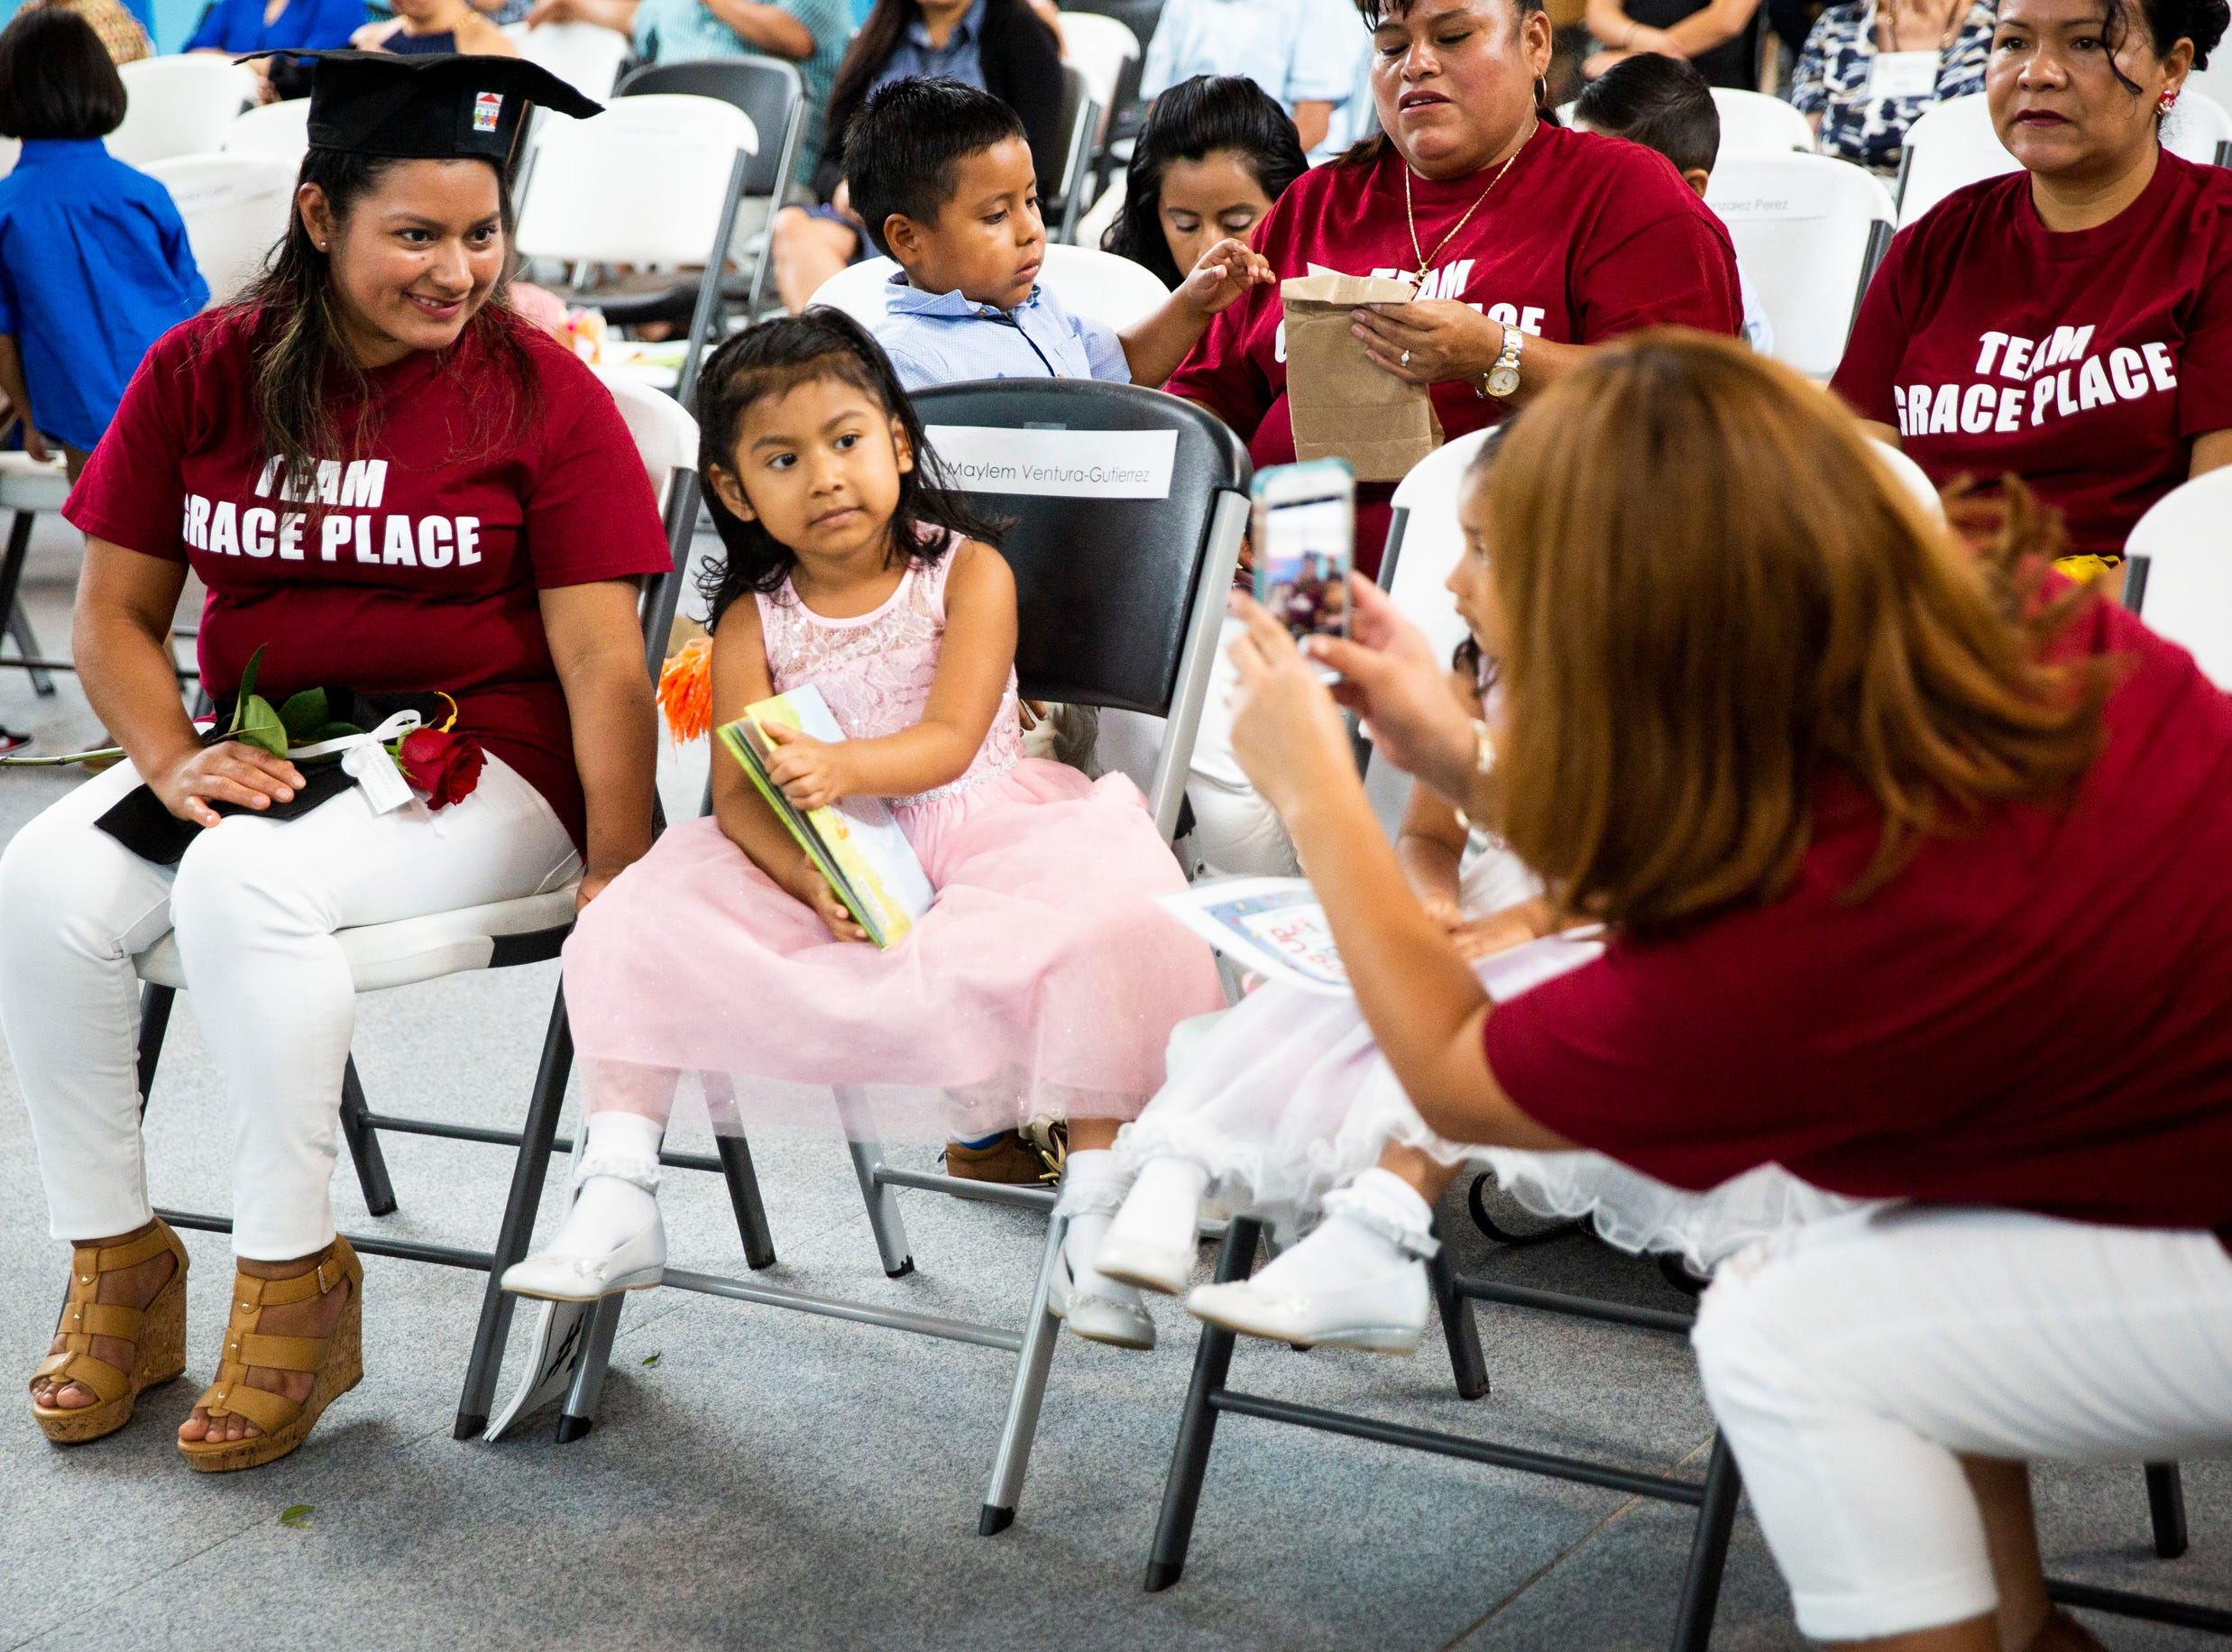 Veronica Gutierrez, left, and her daughter Maylem Ventura-Gutierrez pose for a photo during the Bright Beginnings family literacy program graduation at Grace Place in Golden Gate on Wednesday, May 15, 2019.